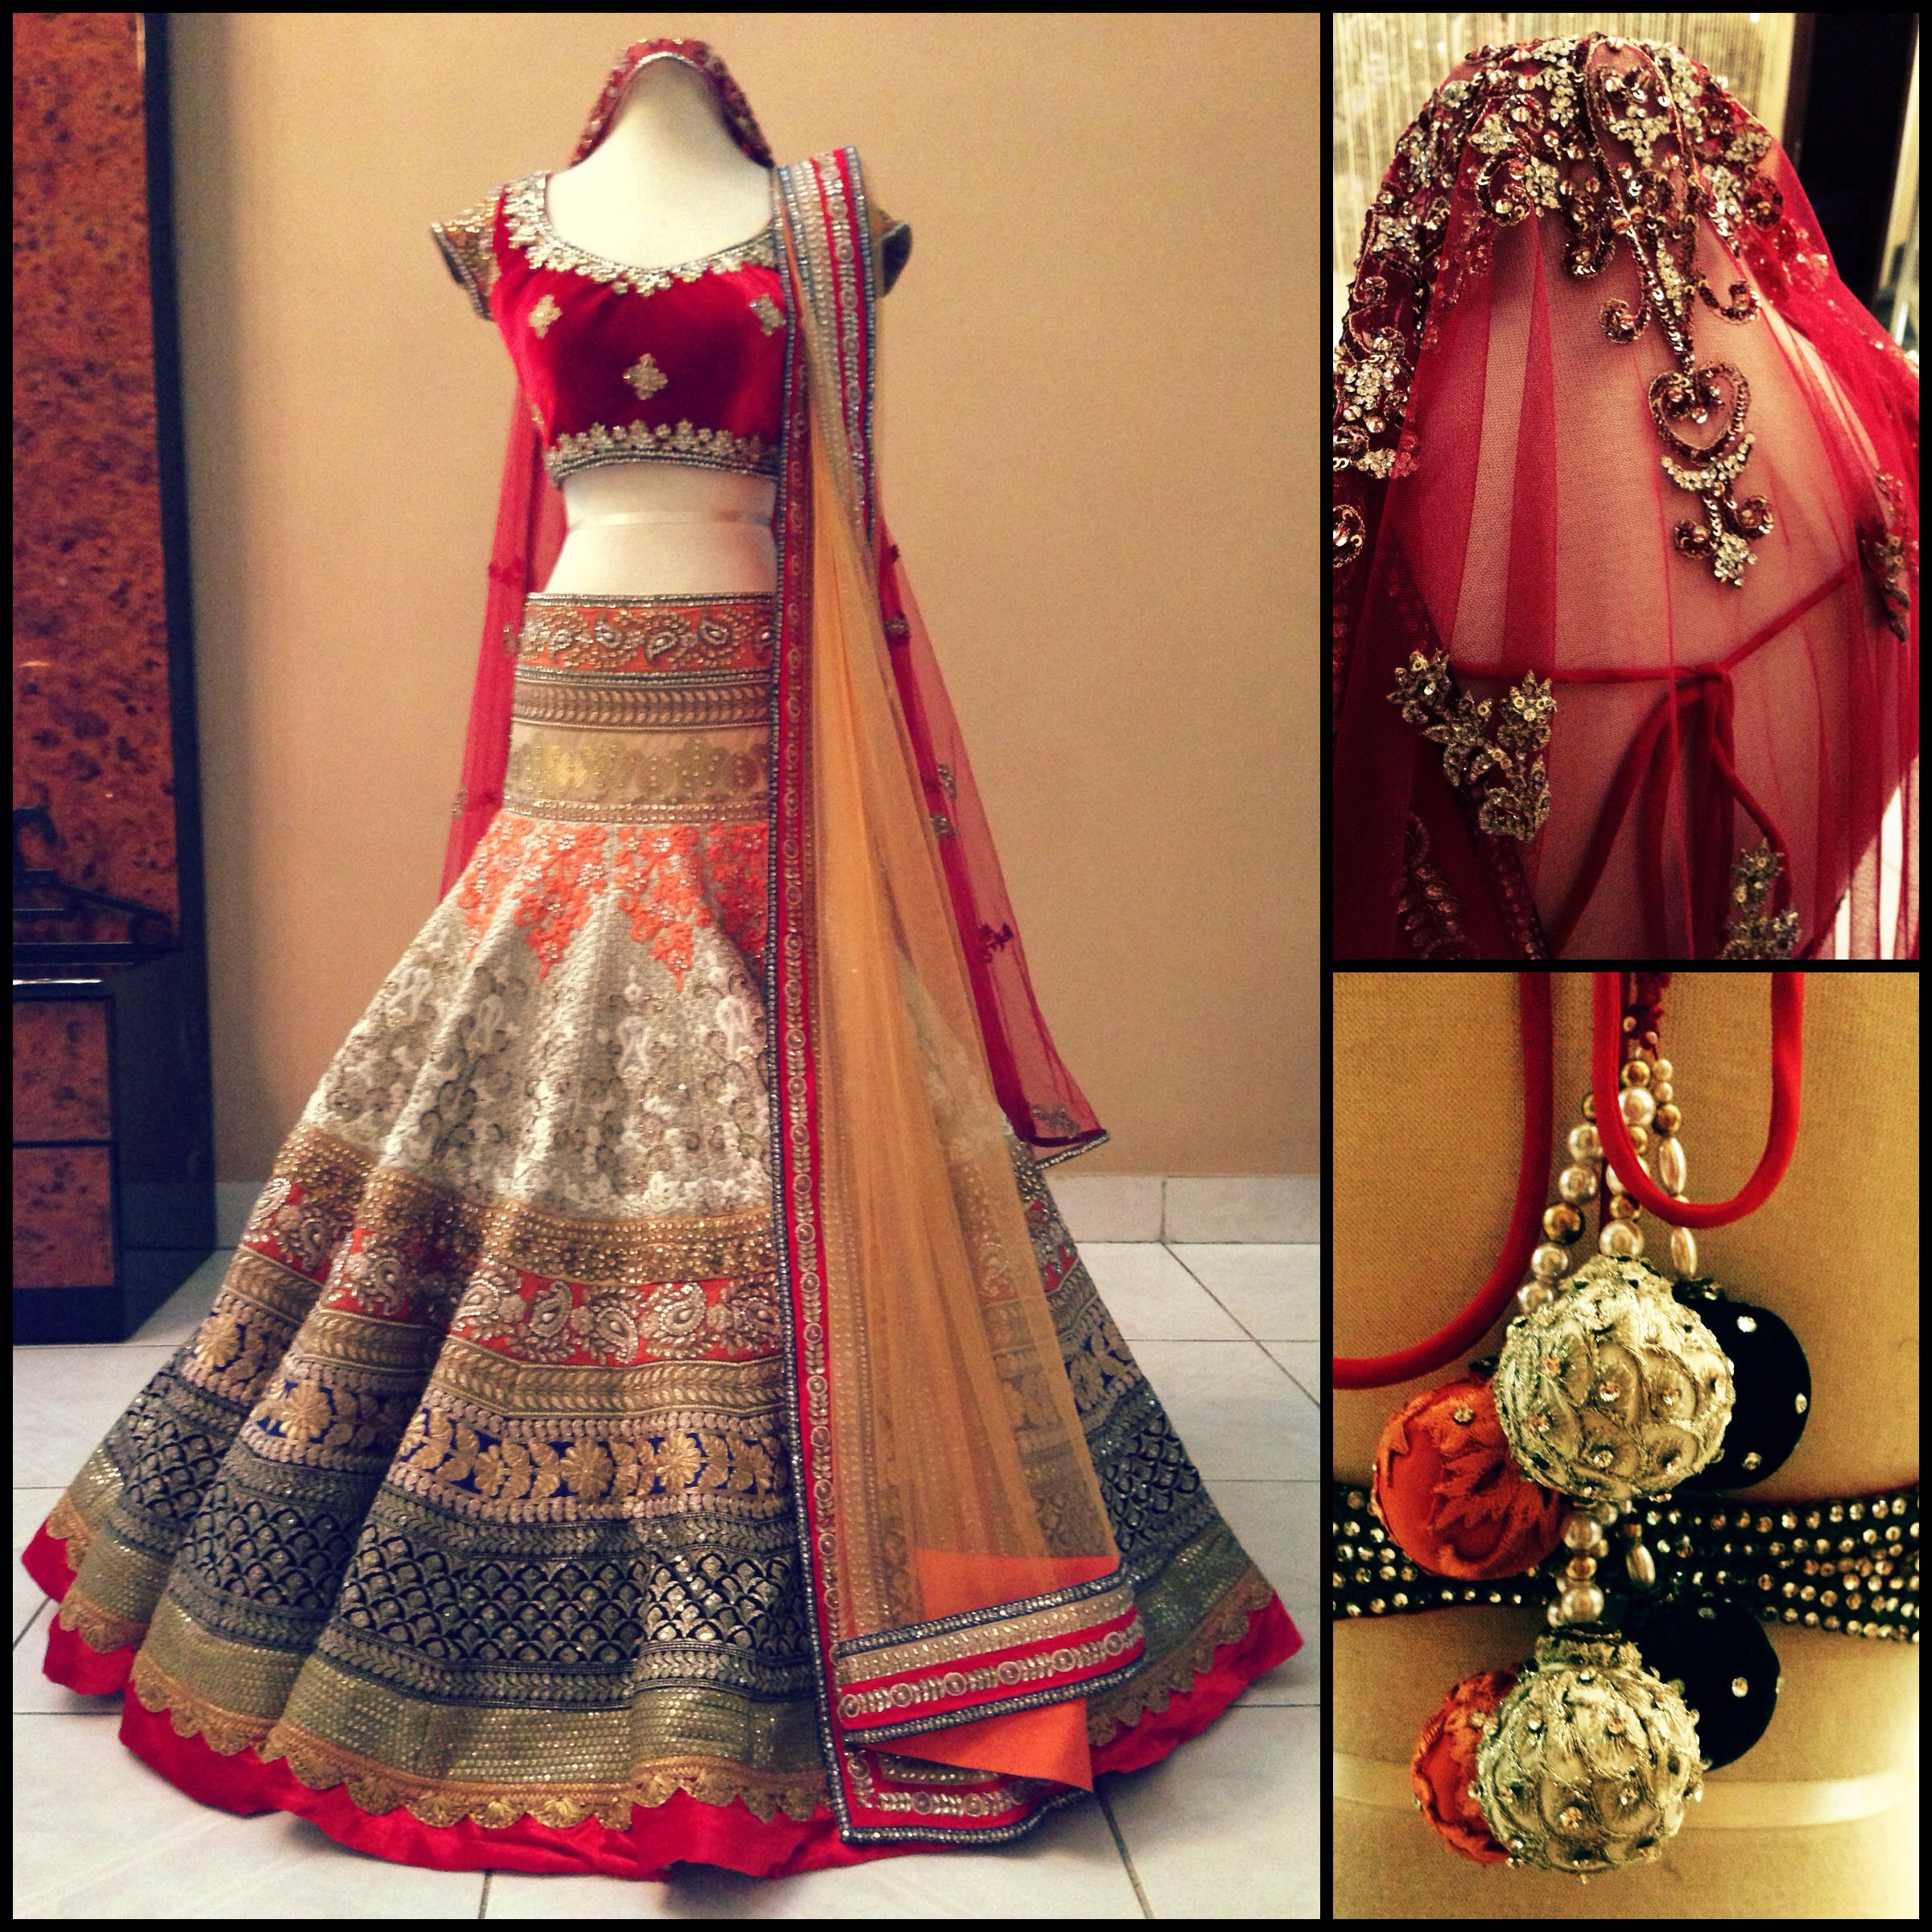 b07c29c388 This lehenga is made in raw silk with red and mustard color dupattas.  Blouse of this lehenga is in dark red colour velvet with hand embroidery on  it.